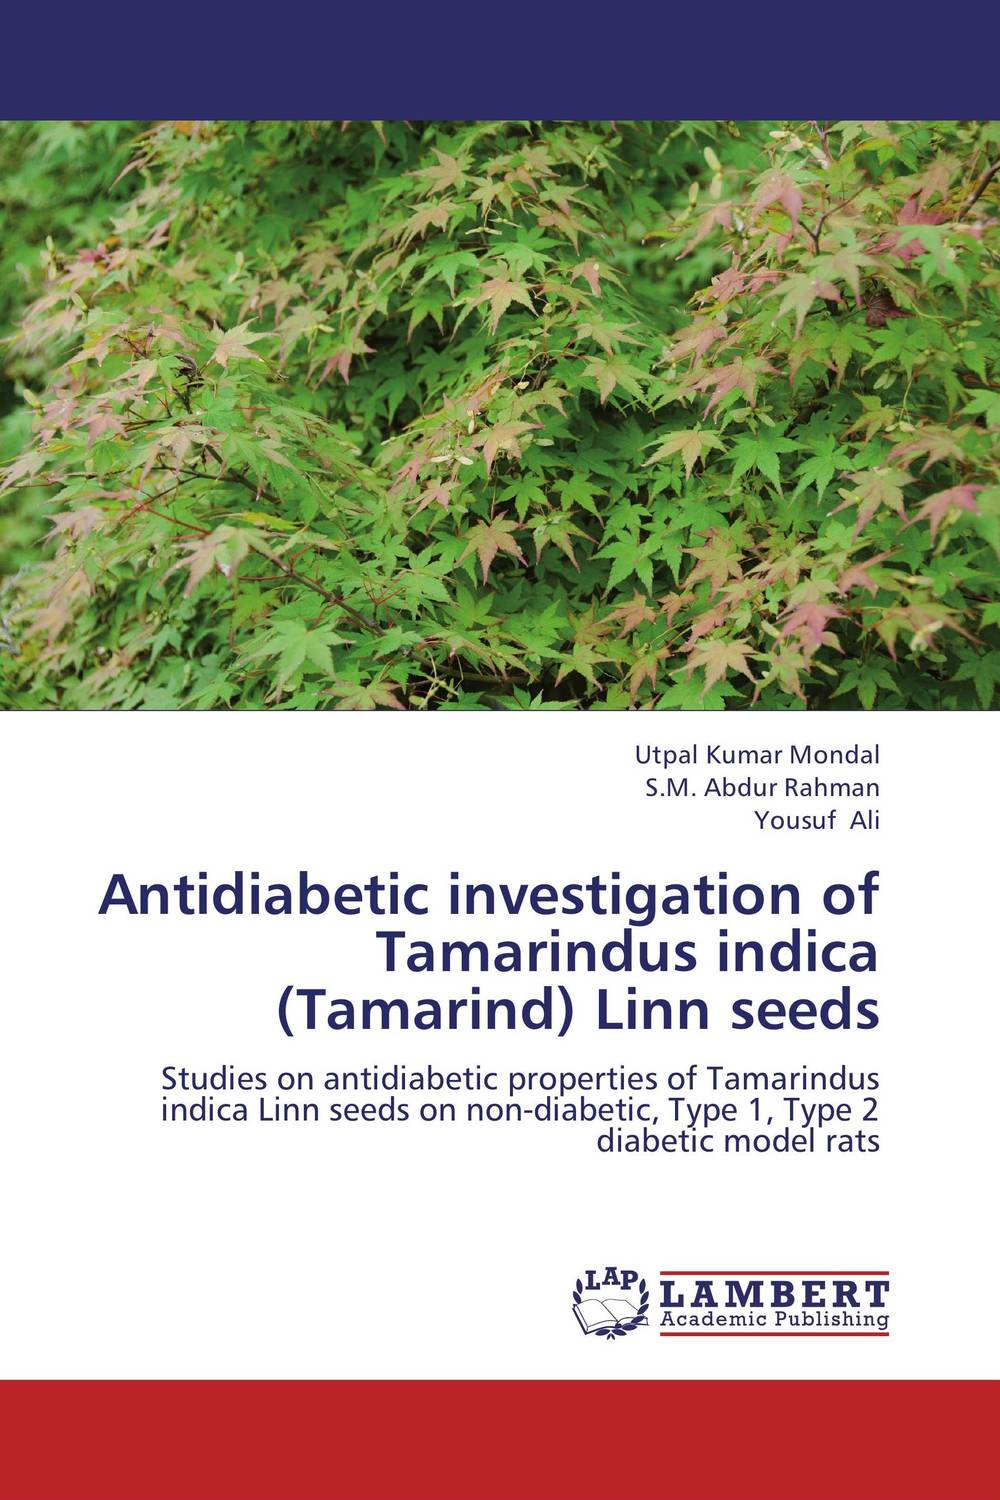 Antidiabetic investigation of Tamarindus indica (Tamarind) Linn seeds pharmacological and toxicological investigations of saraca indica